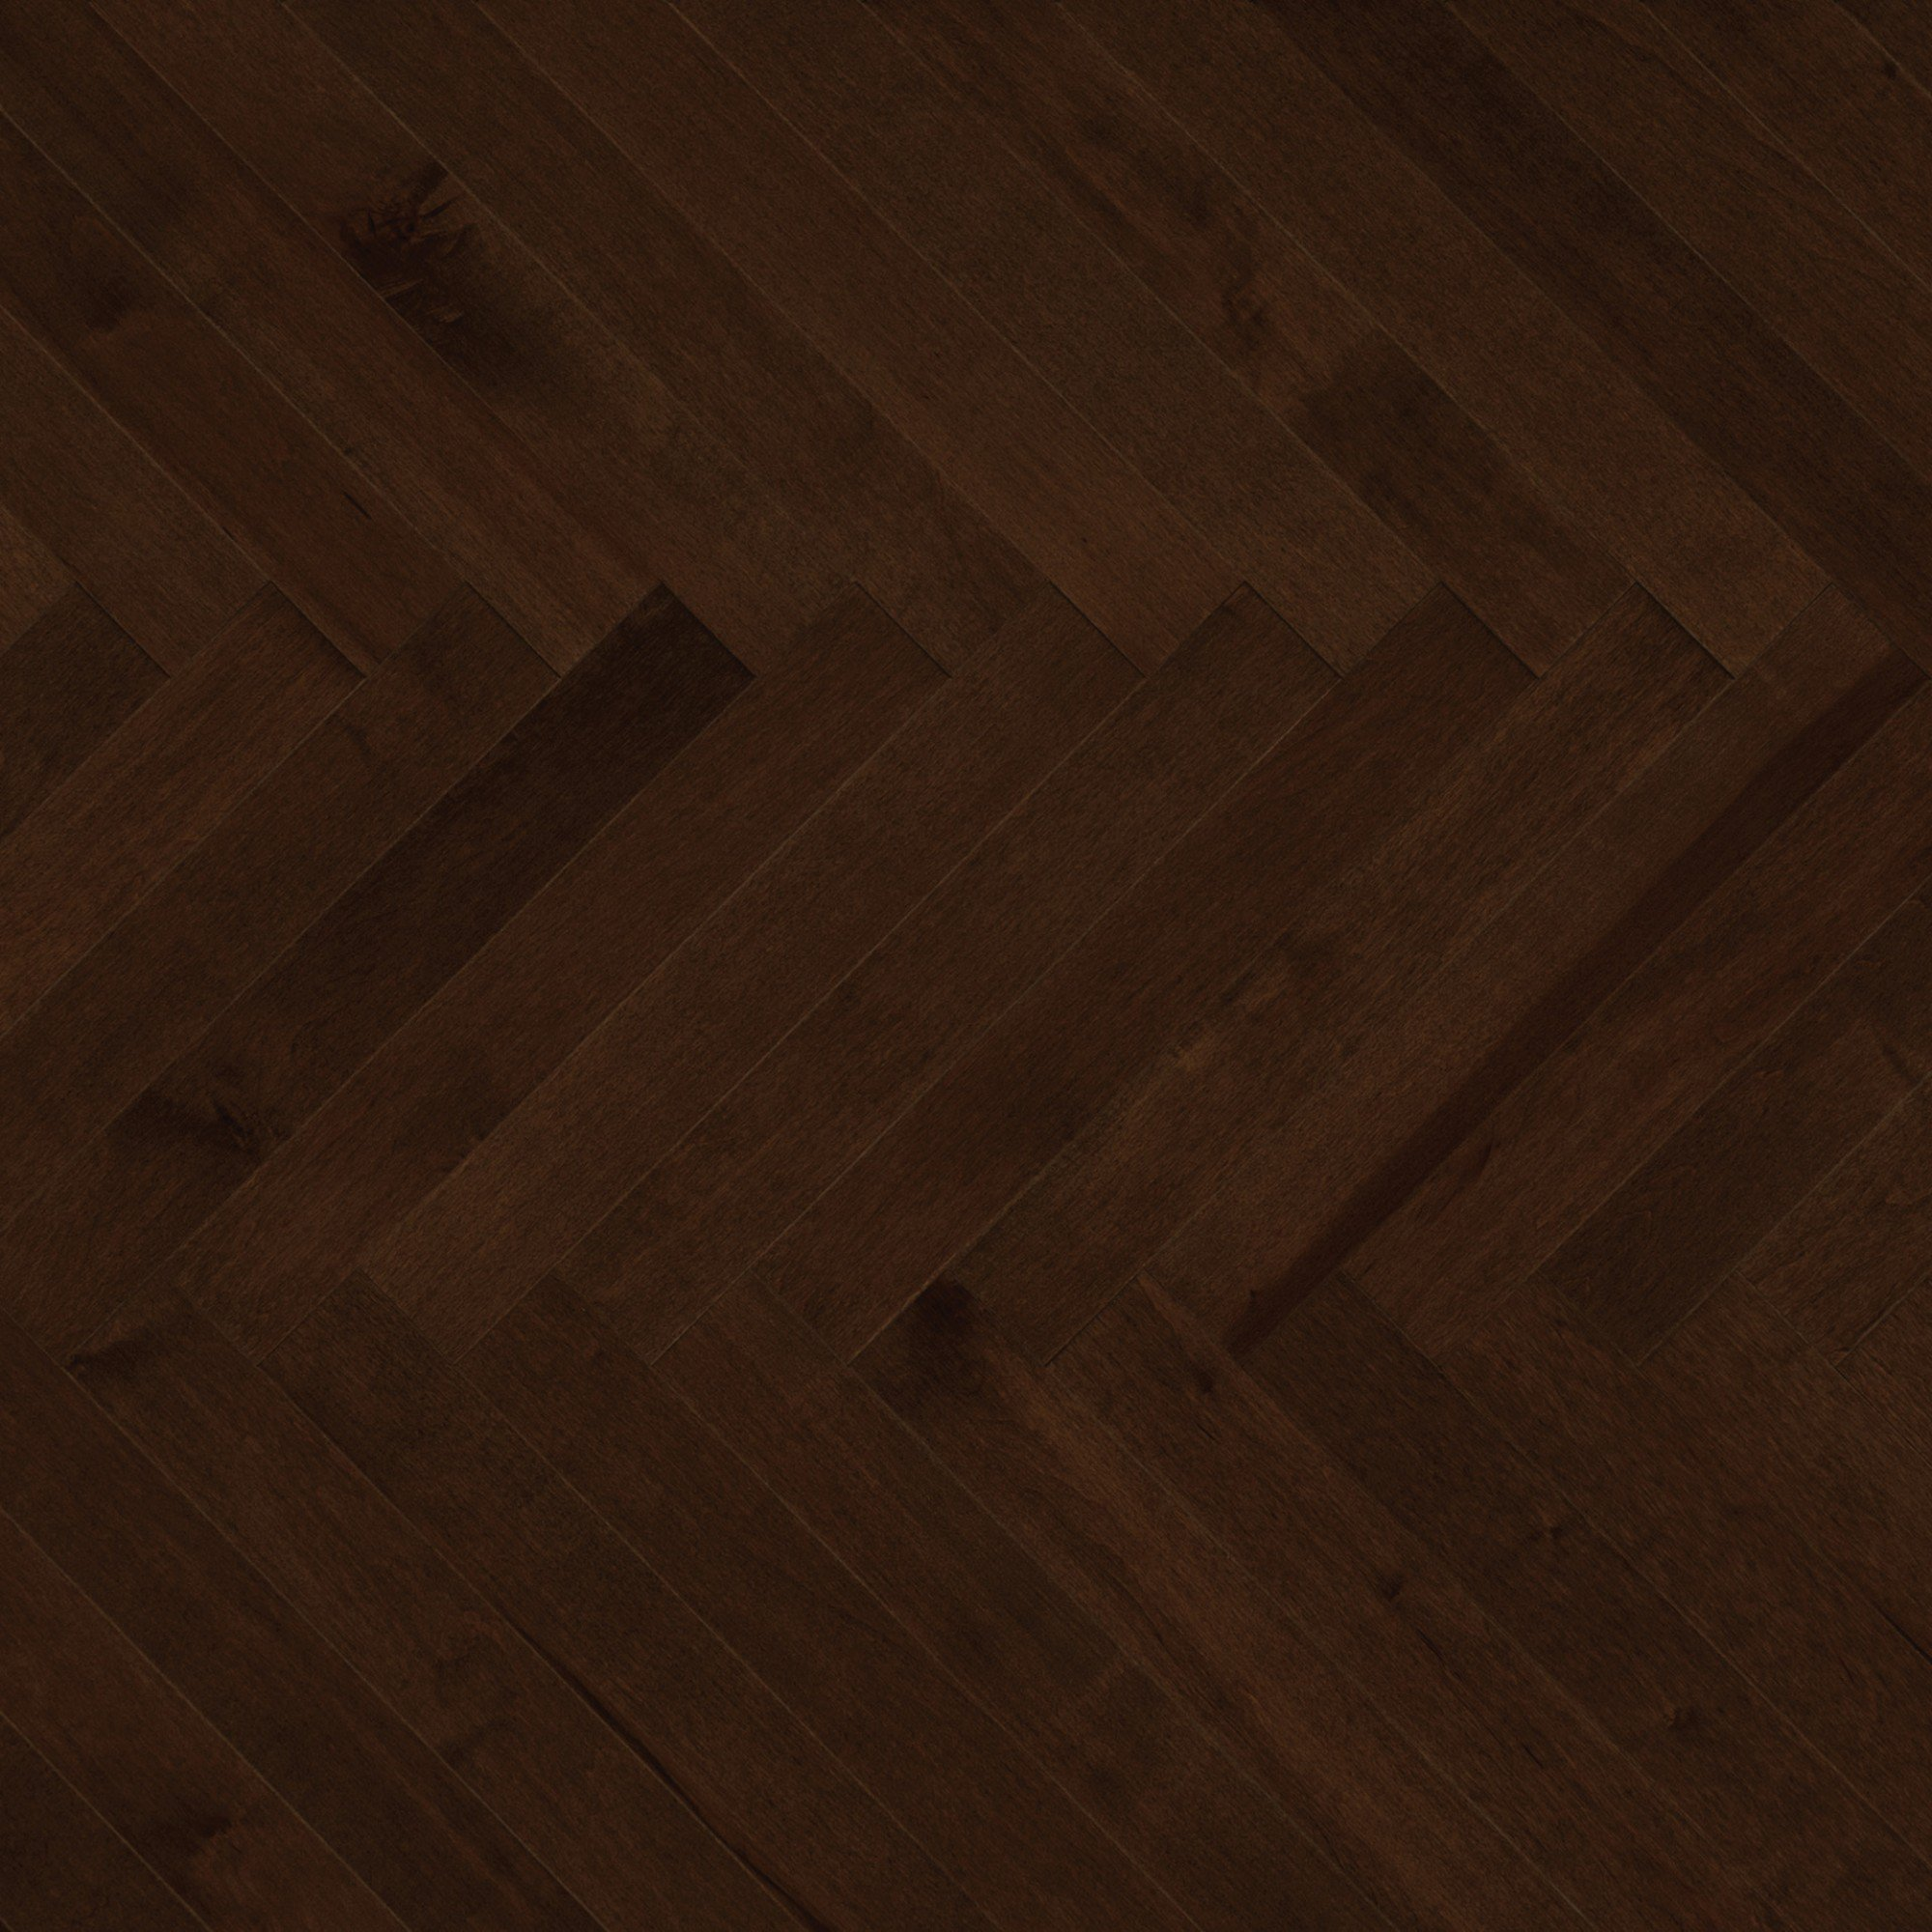 Maple Java Exclusive Smooth - Floor image